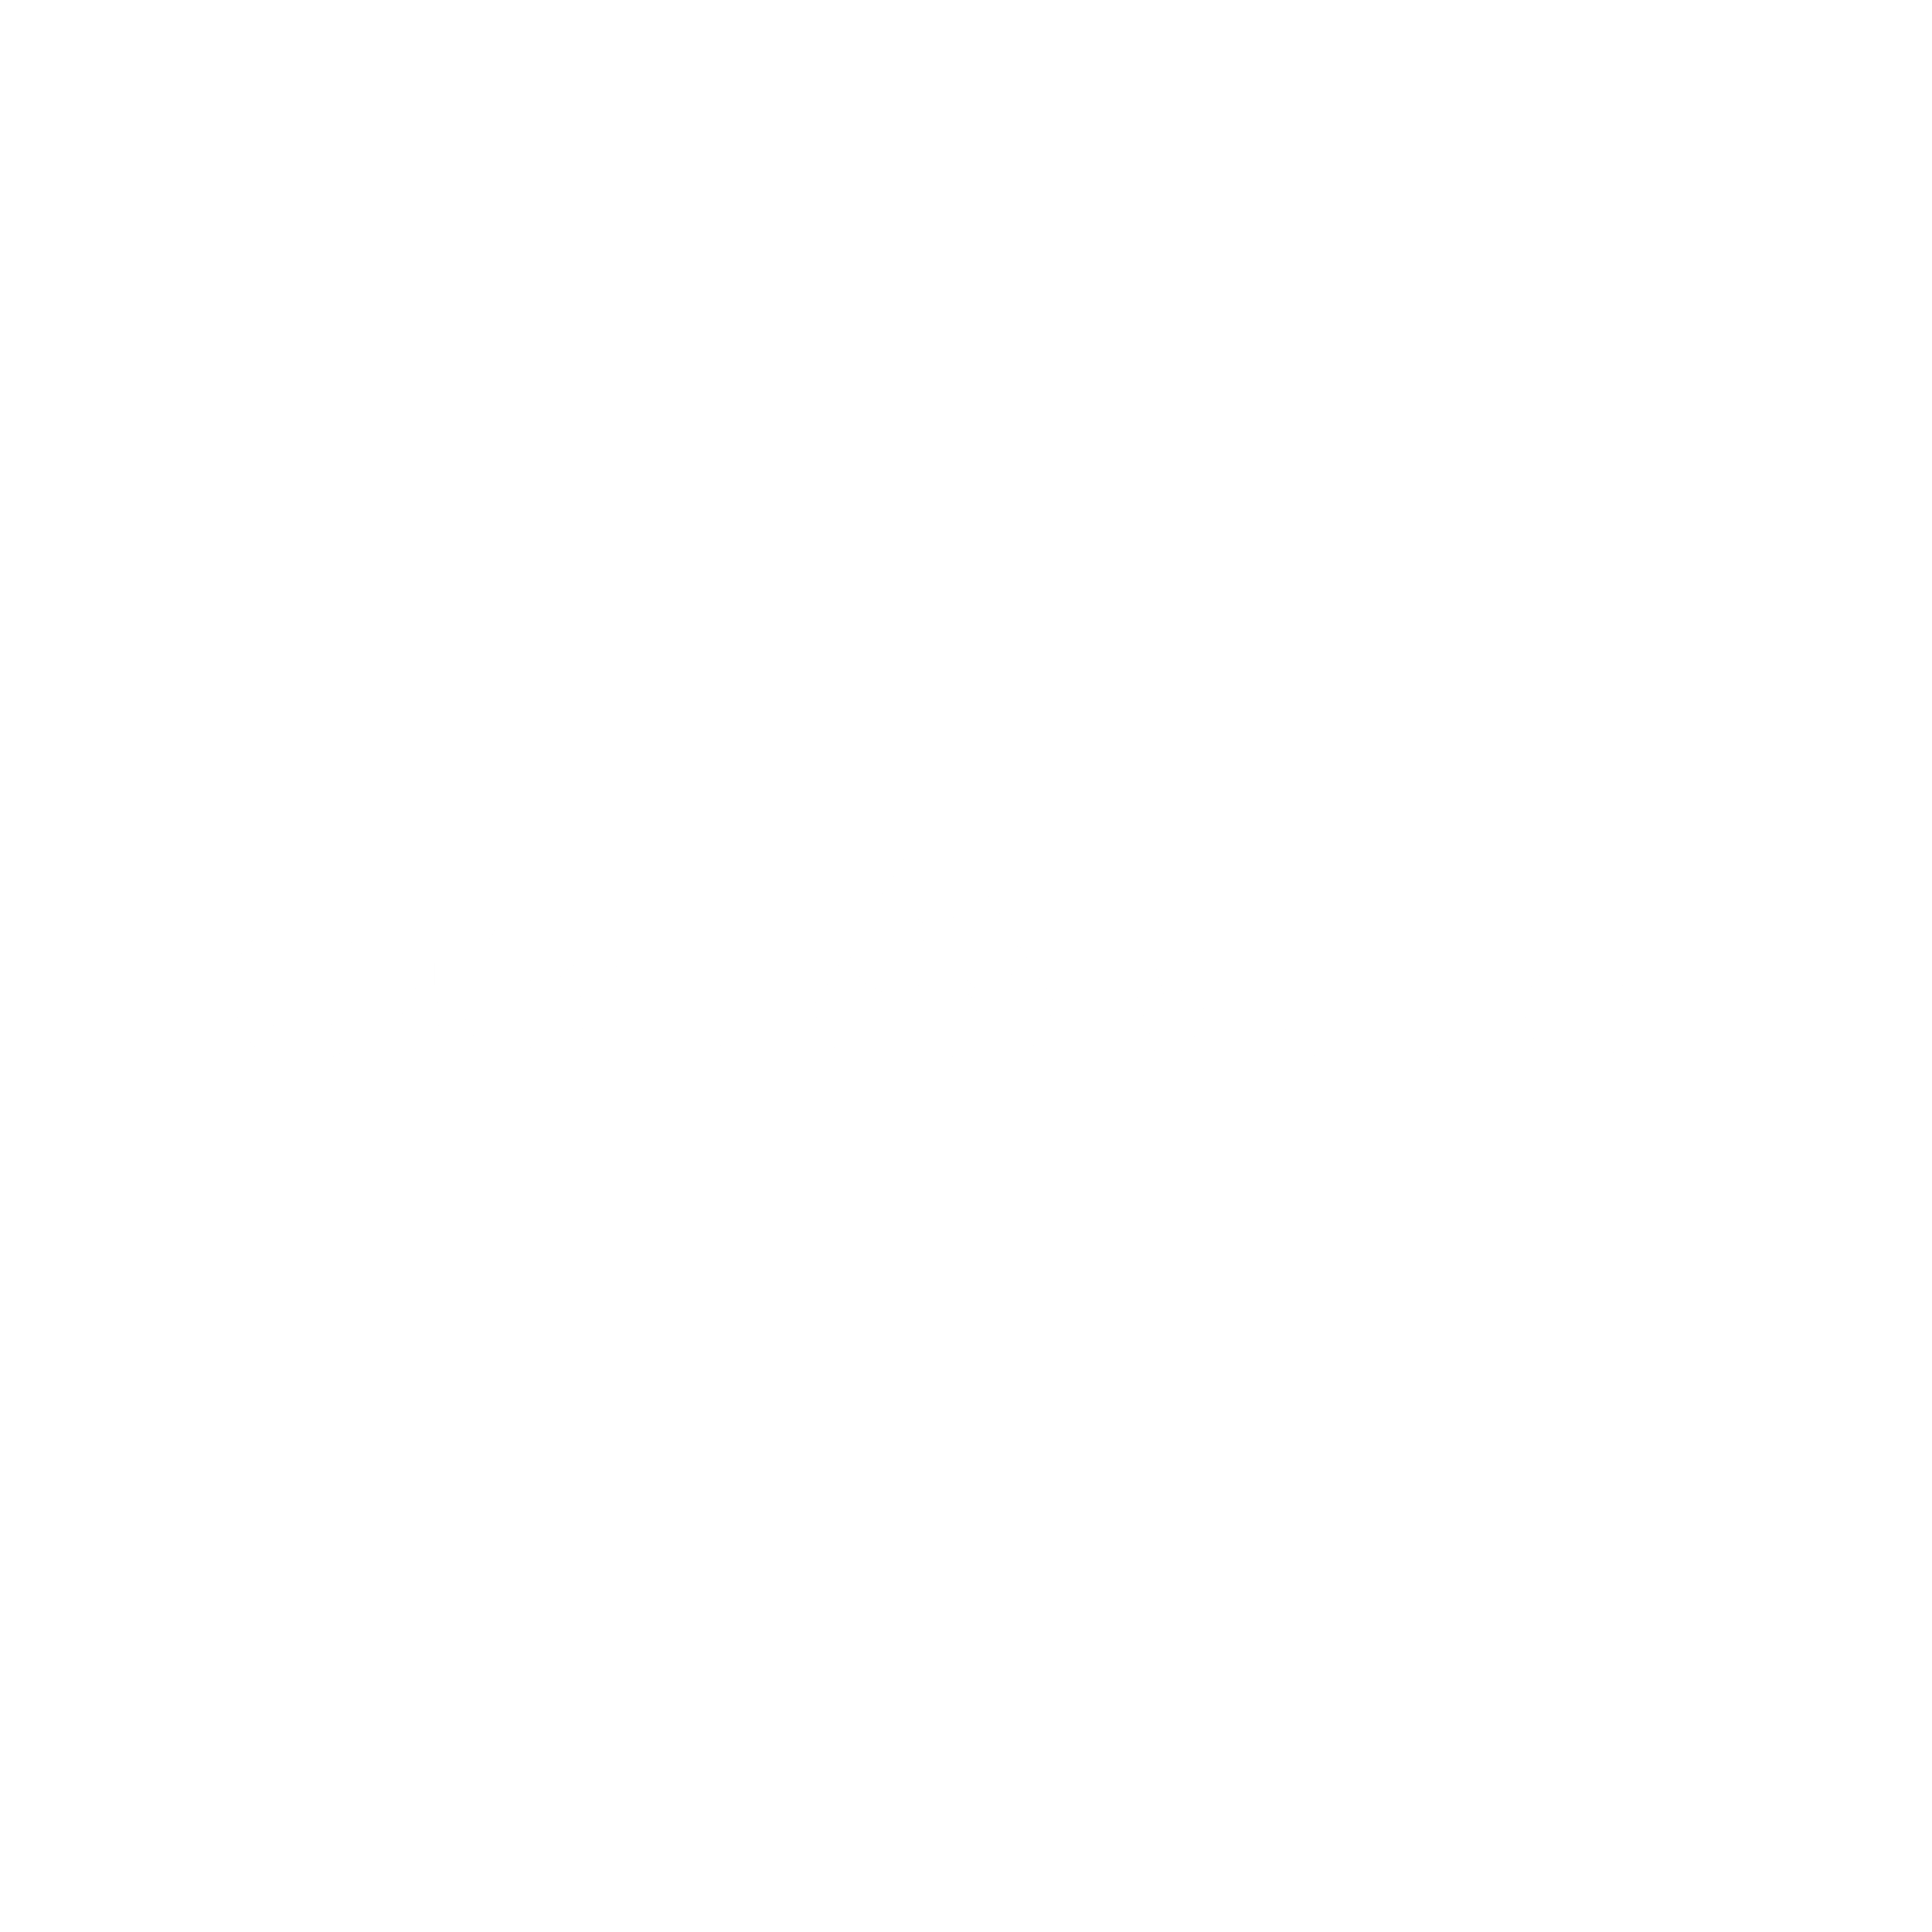 Credit Mutuel Logo Png Transparent Svg Vector Freebie Supply